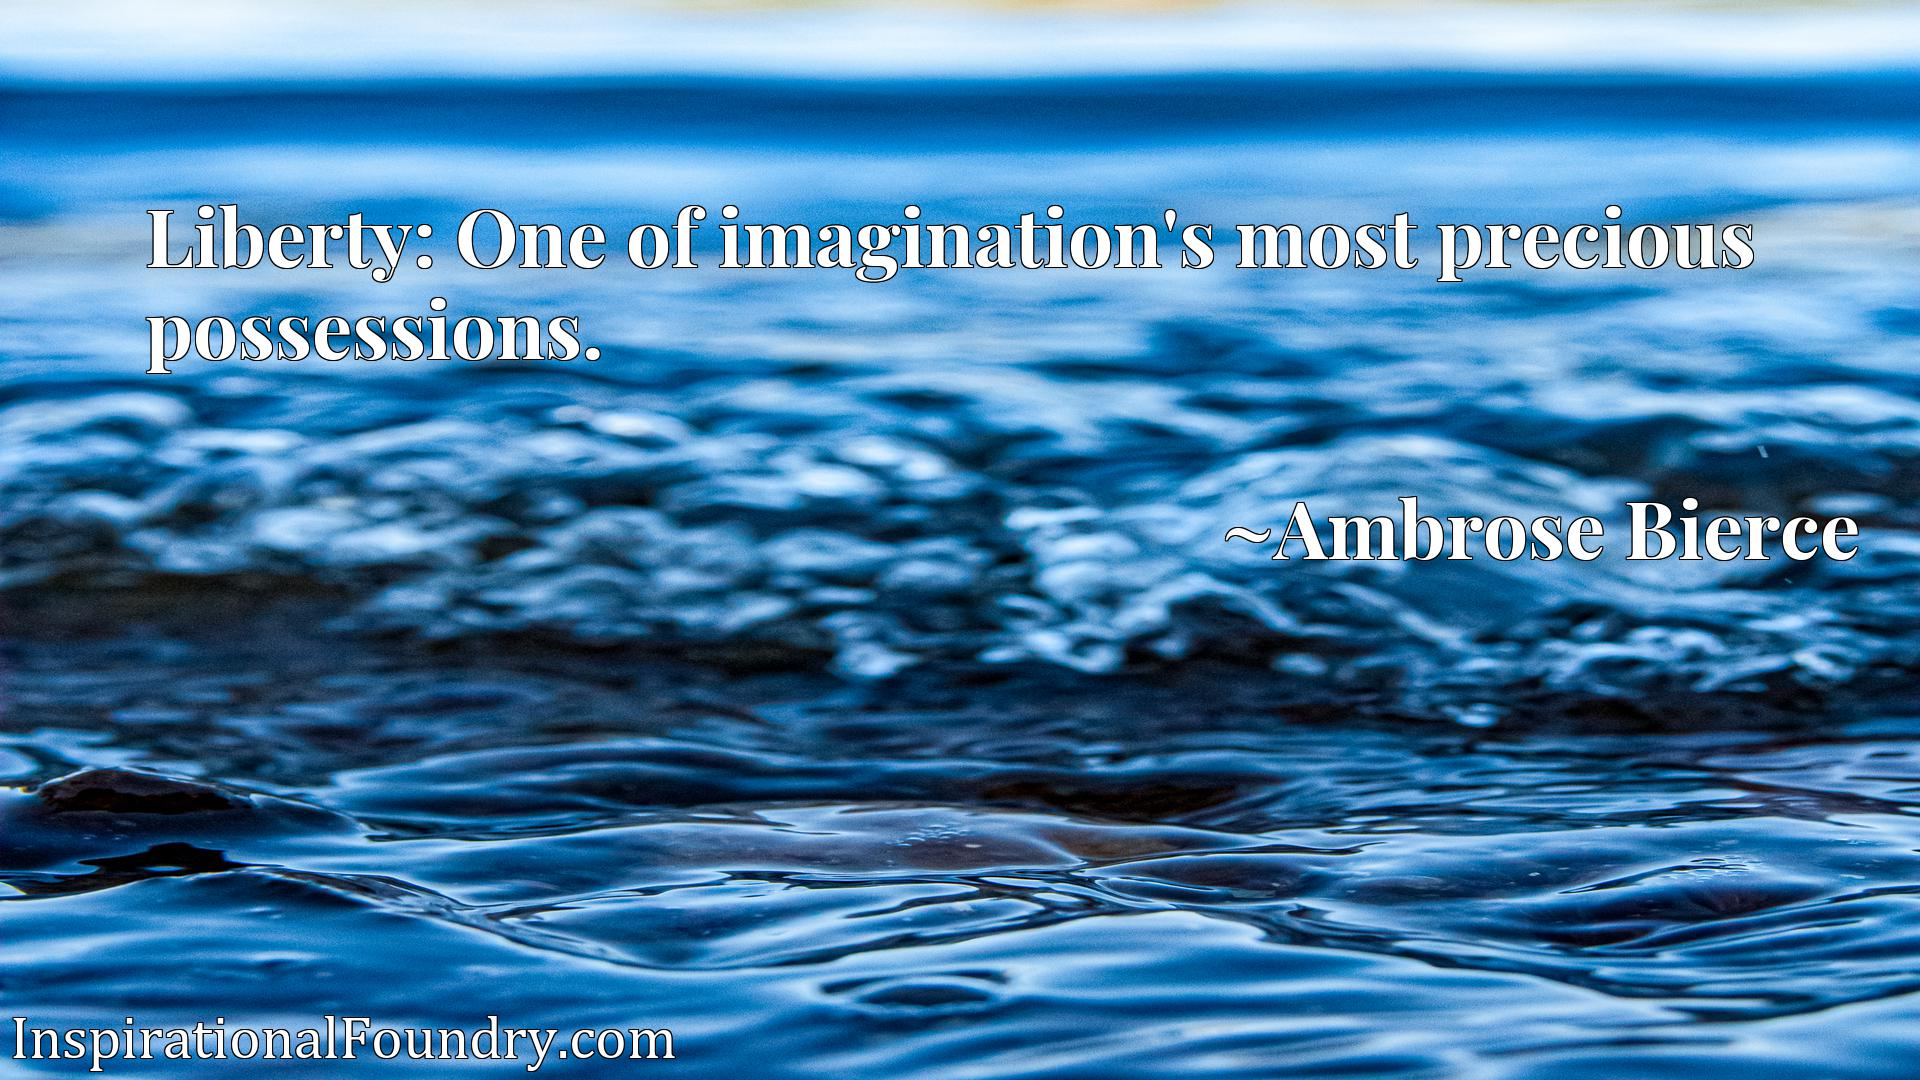 Liberty: One of imagination's most precious possessions.